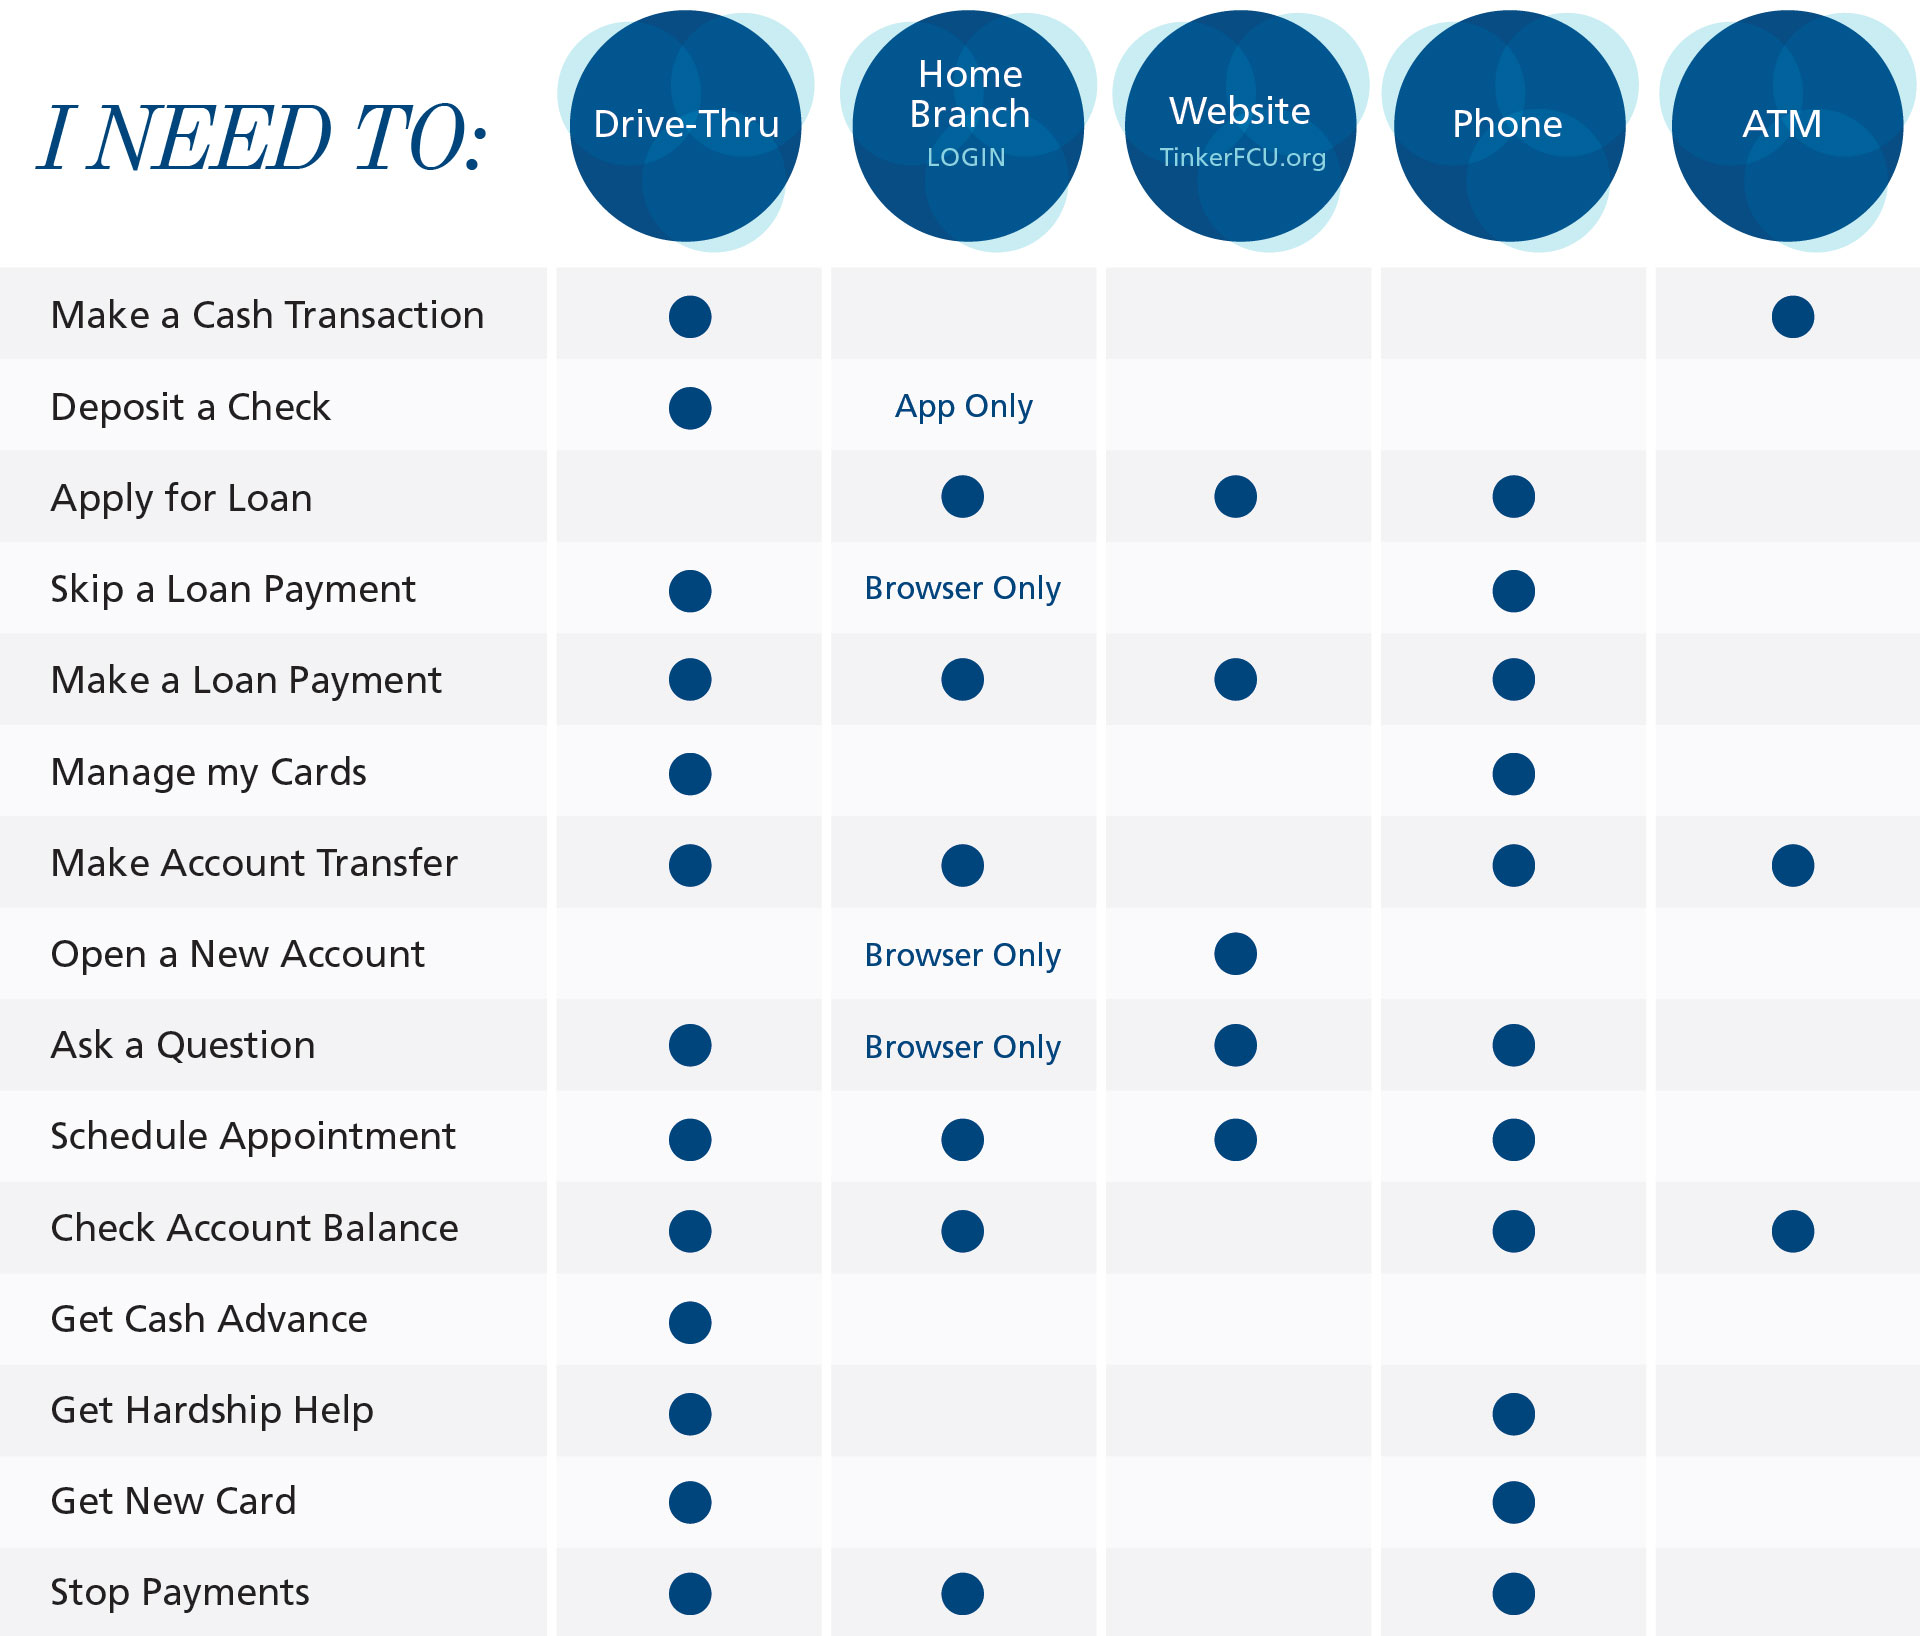 TFCU Chart of lobbyless services. Please call us for details.